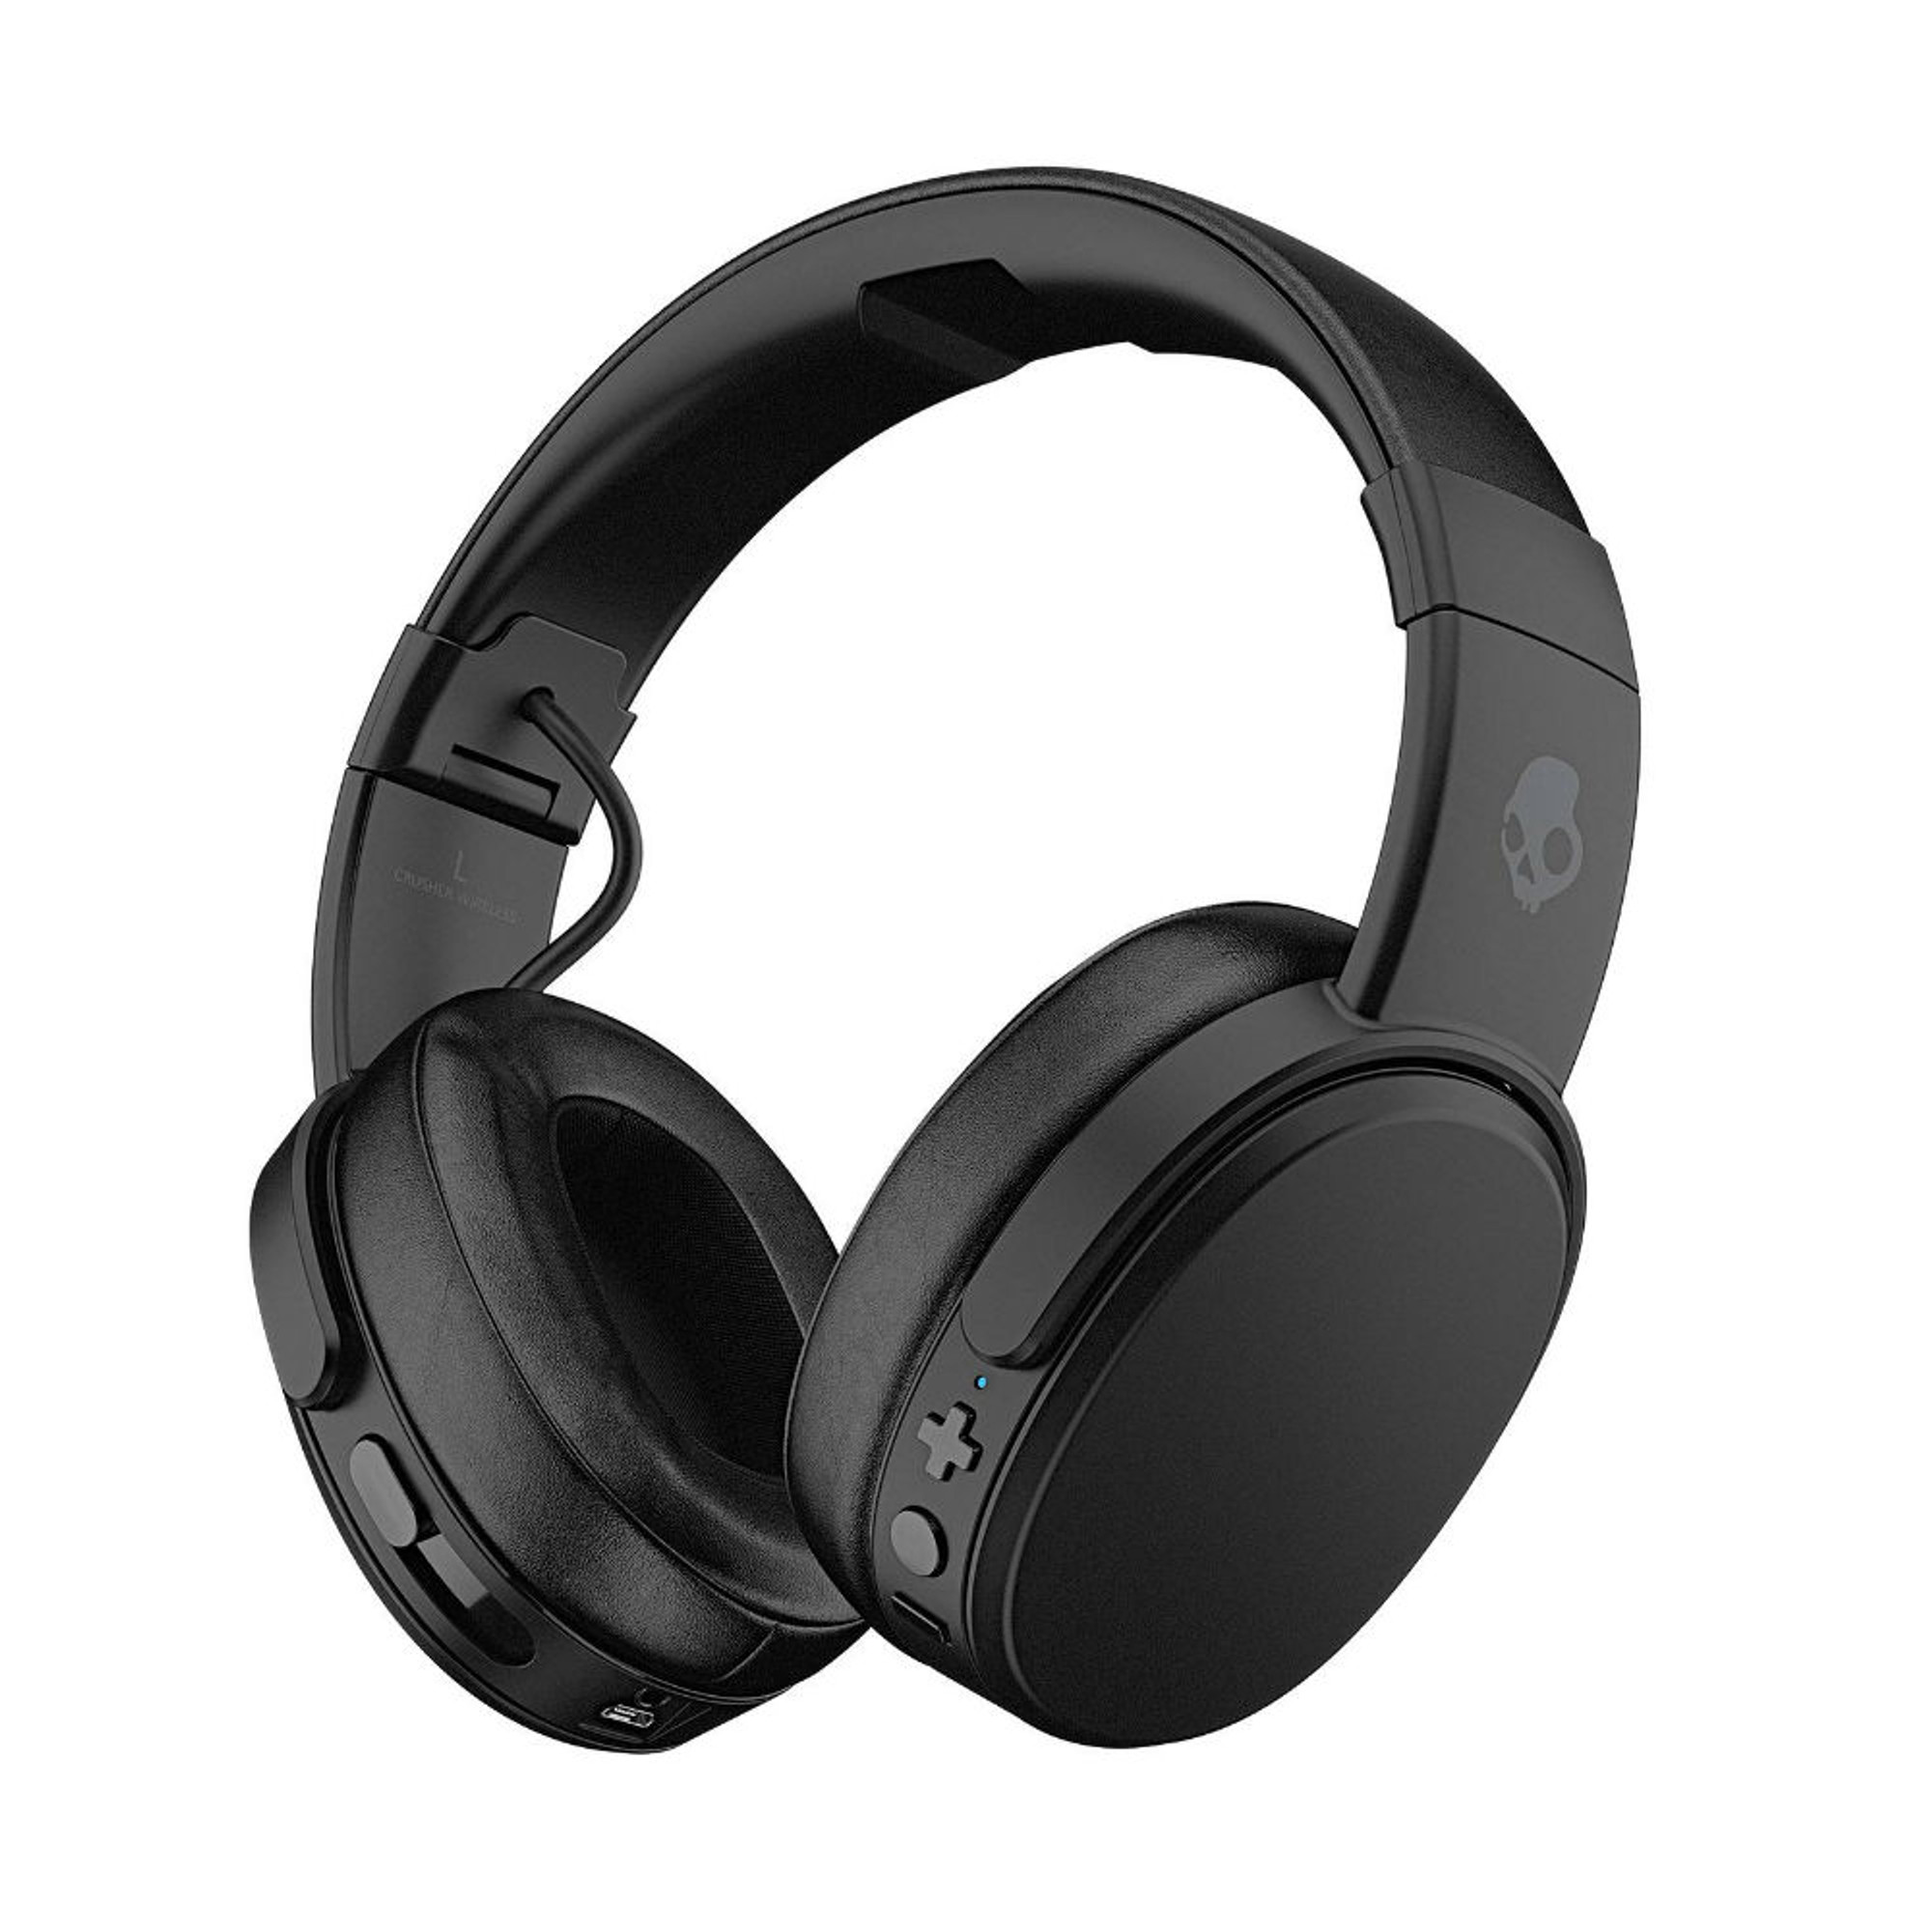 Skullcandy Crusher Wireless Skullcandy Crusher Wireless Over-ear Headphones (black